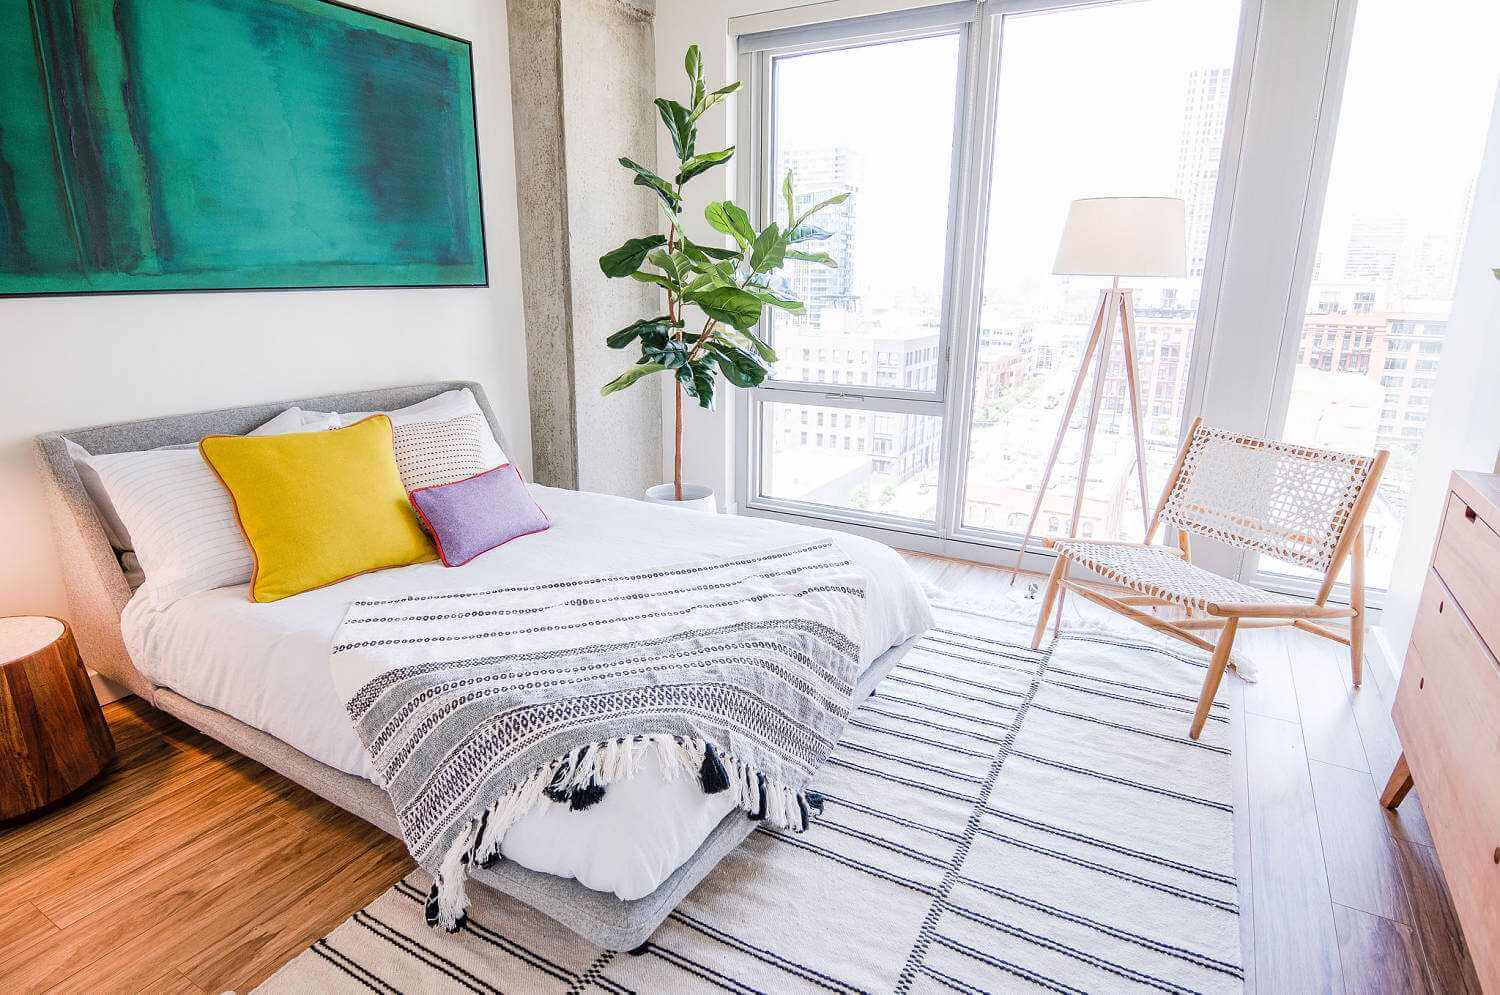 Best apartment hunting service in Chicago - EMME